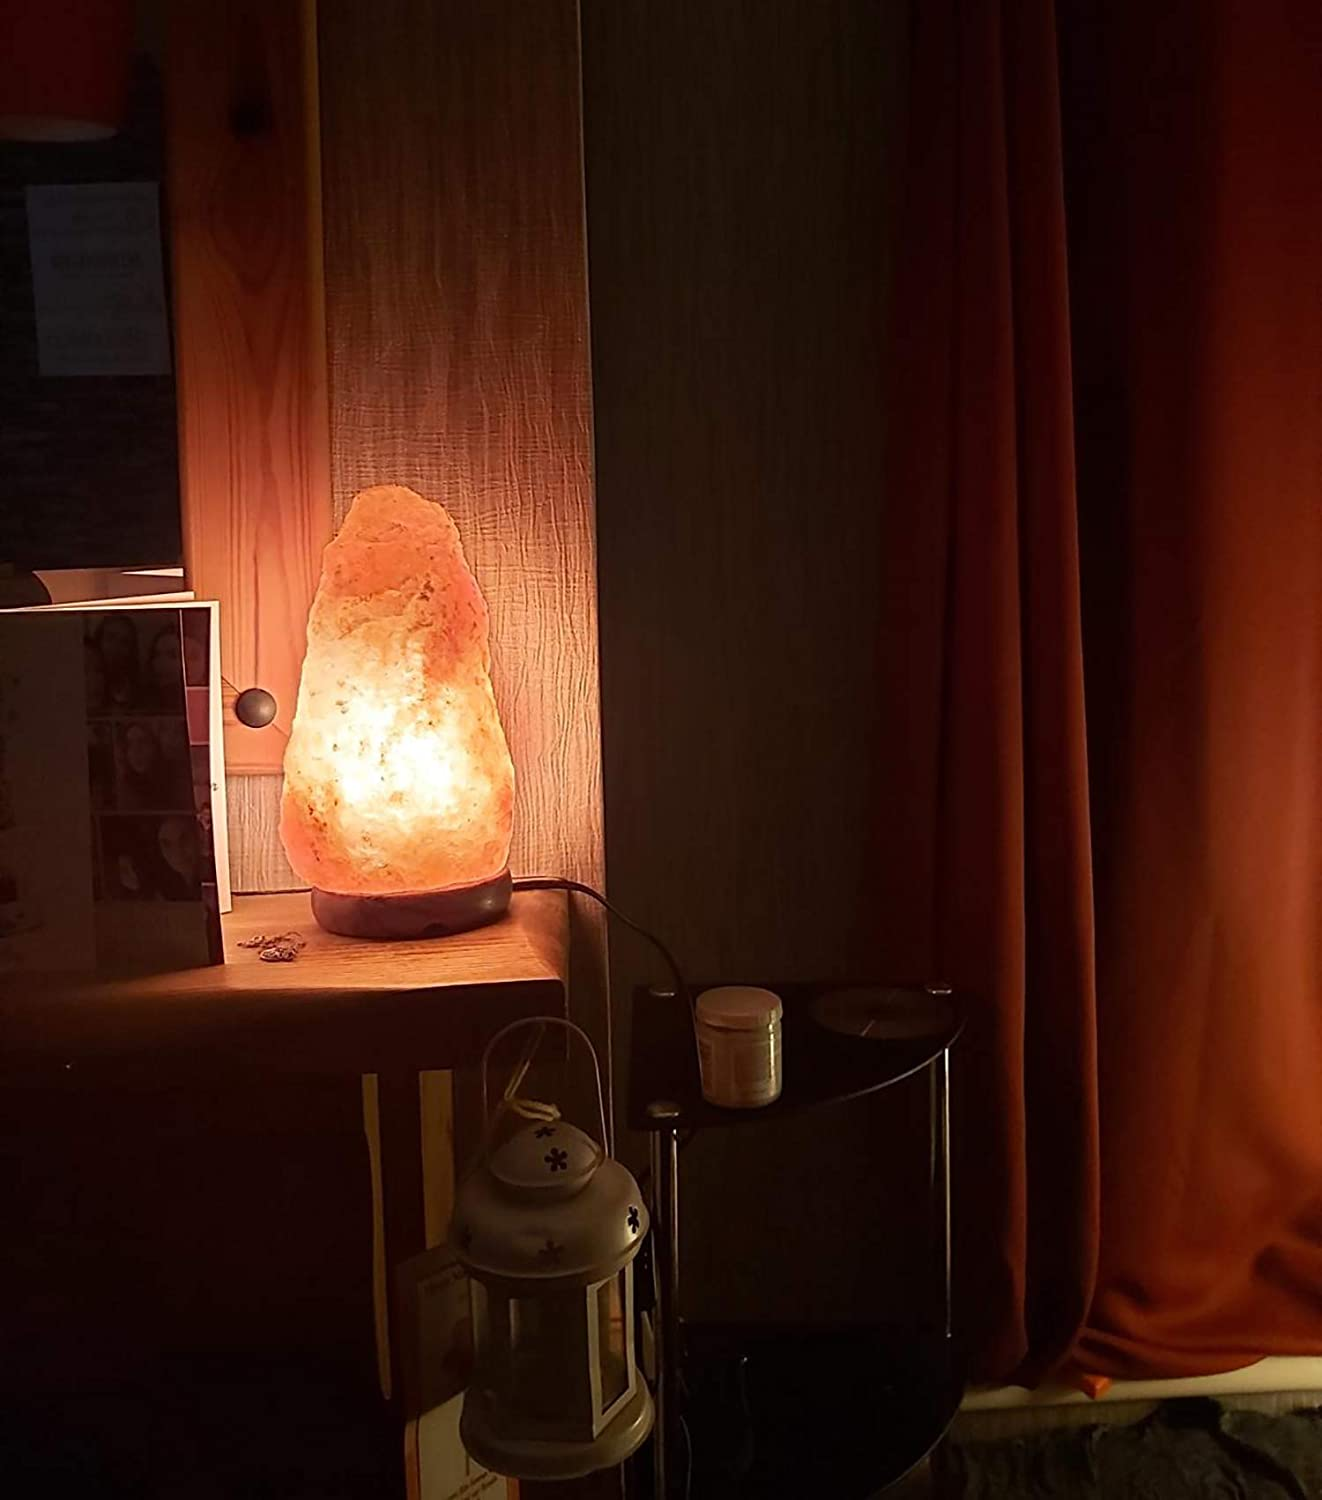 Hand Carved Natural from Foothills of The Himalayas Gift Accessory with Button Cable /& CE Certified Plug for Christmas /& Birthday Party 5-7 Himalayan Crystal Rock Salt Lamp